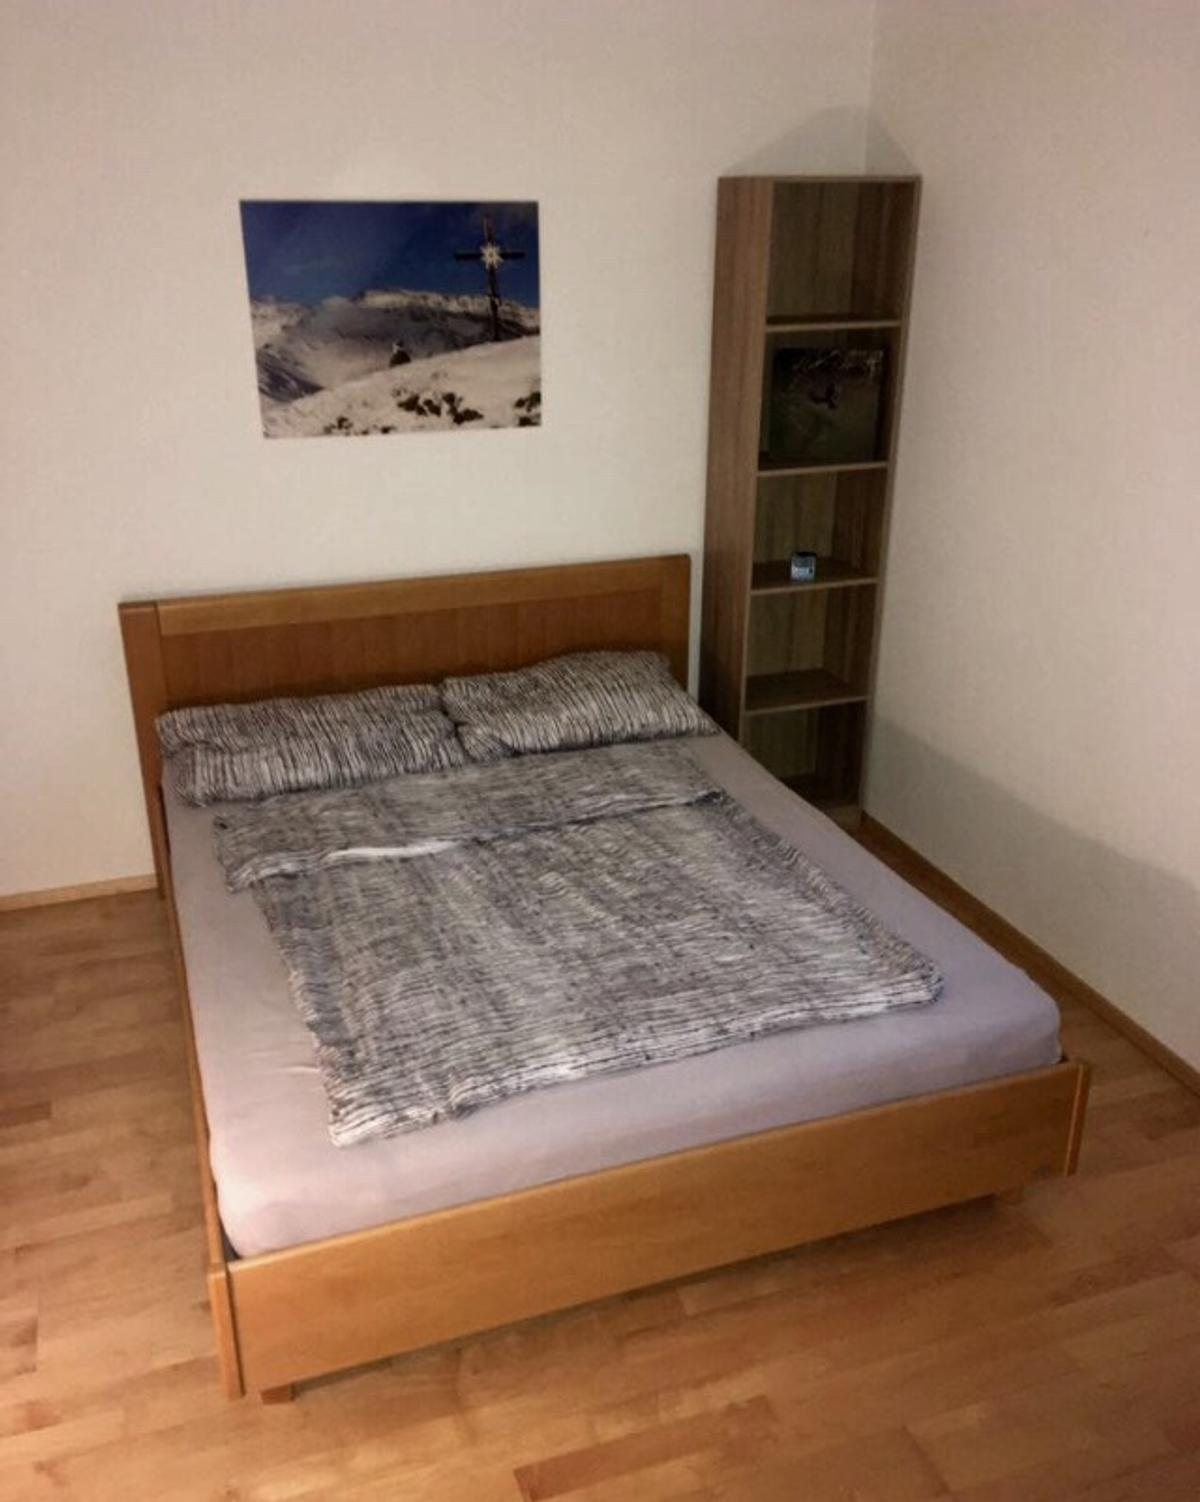 Holz Bett Massiv 160x200 In 6116 Weer For 120 00 For Sale Shpock